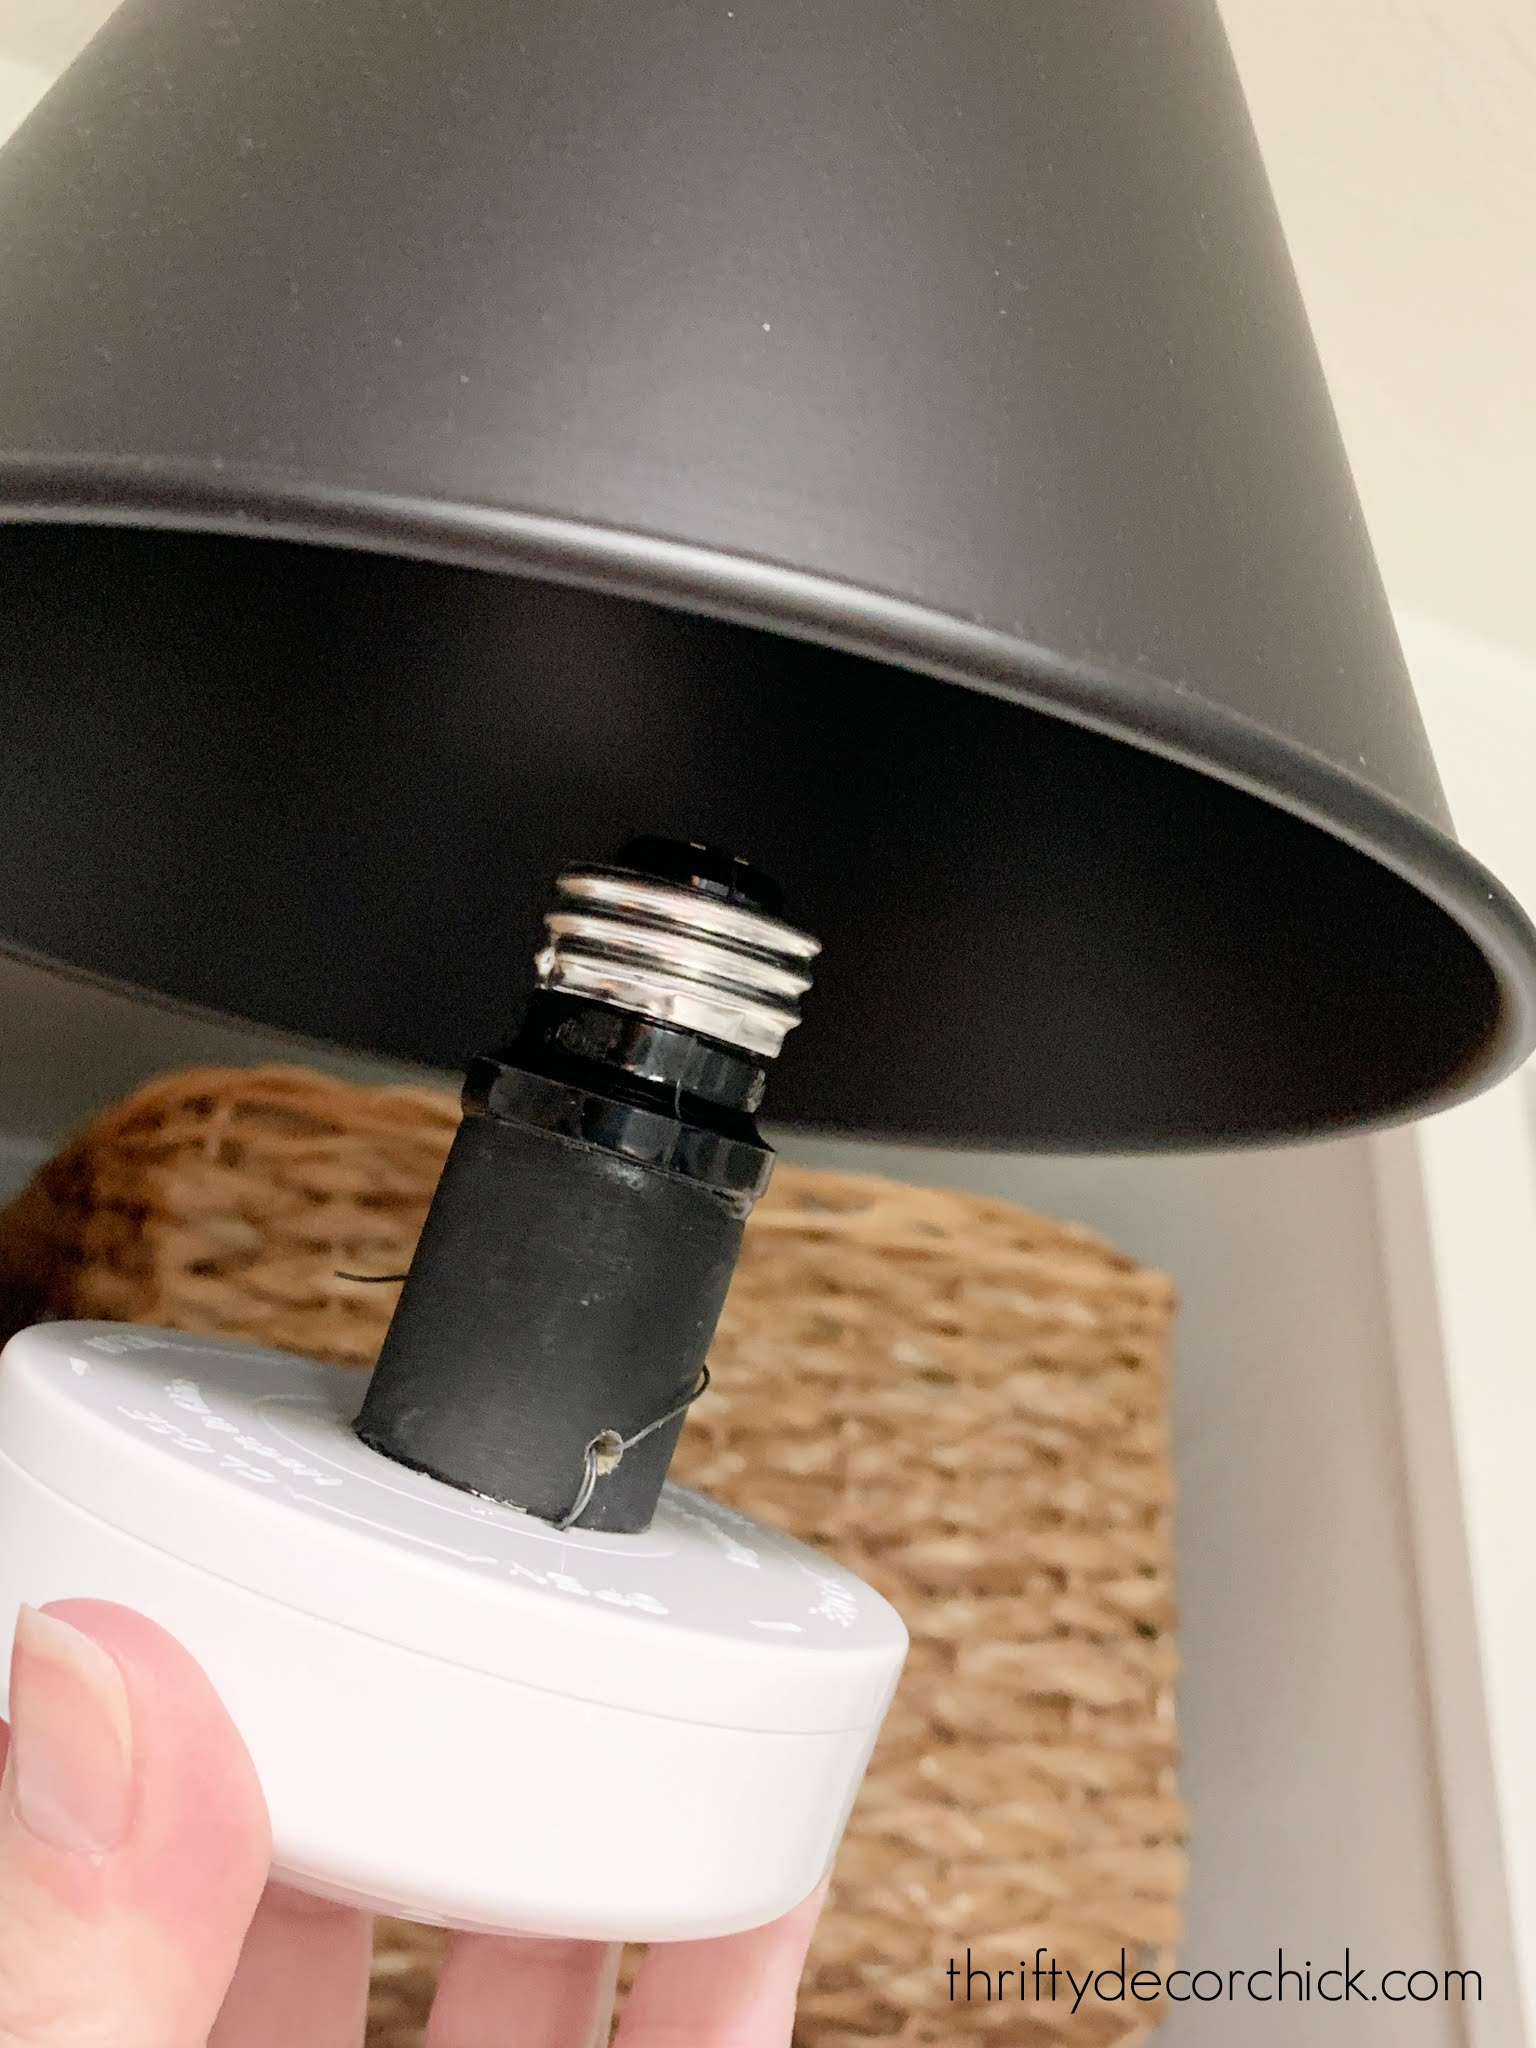 https www thriftydecorchick com 2019 07 how to add light fixture anywhere html